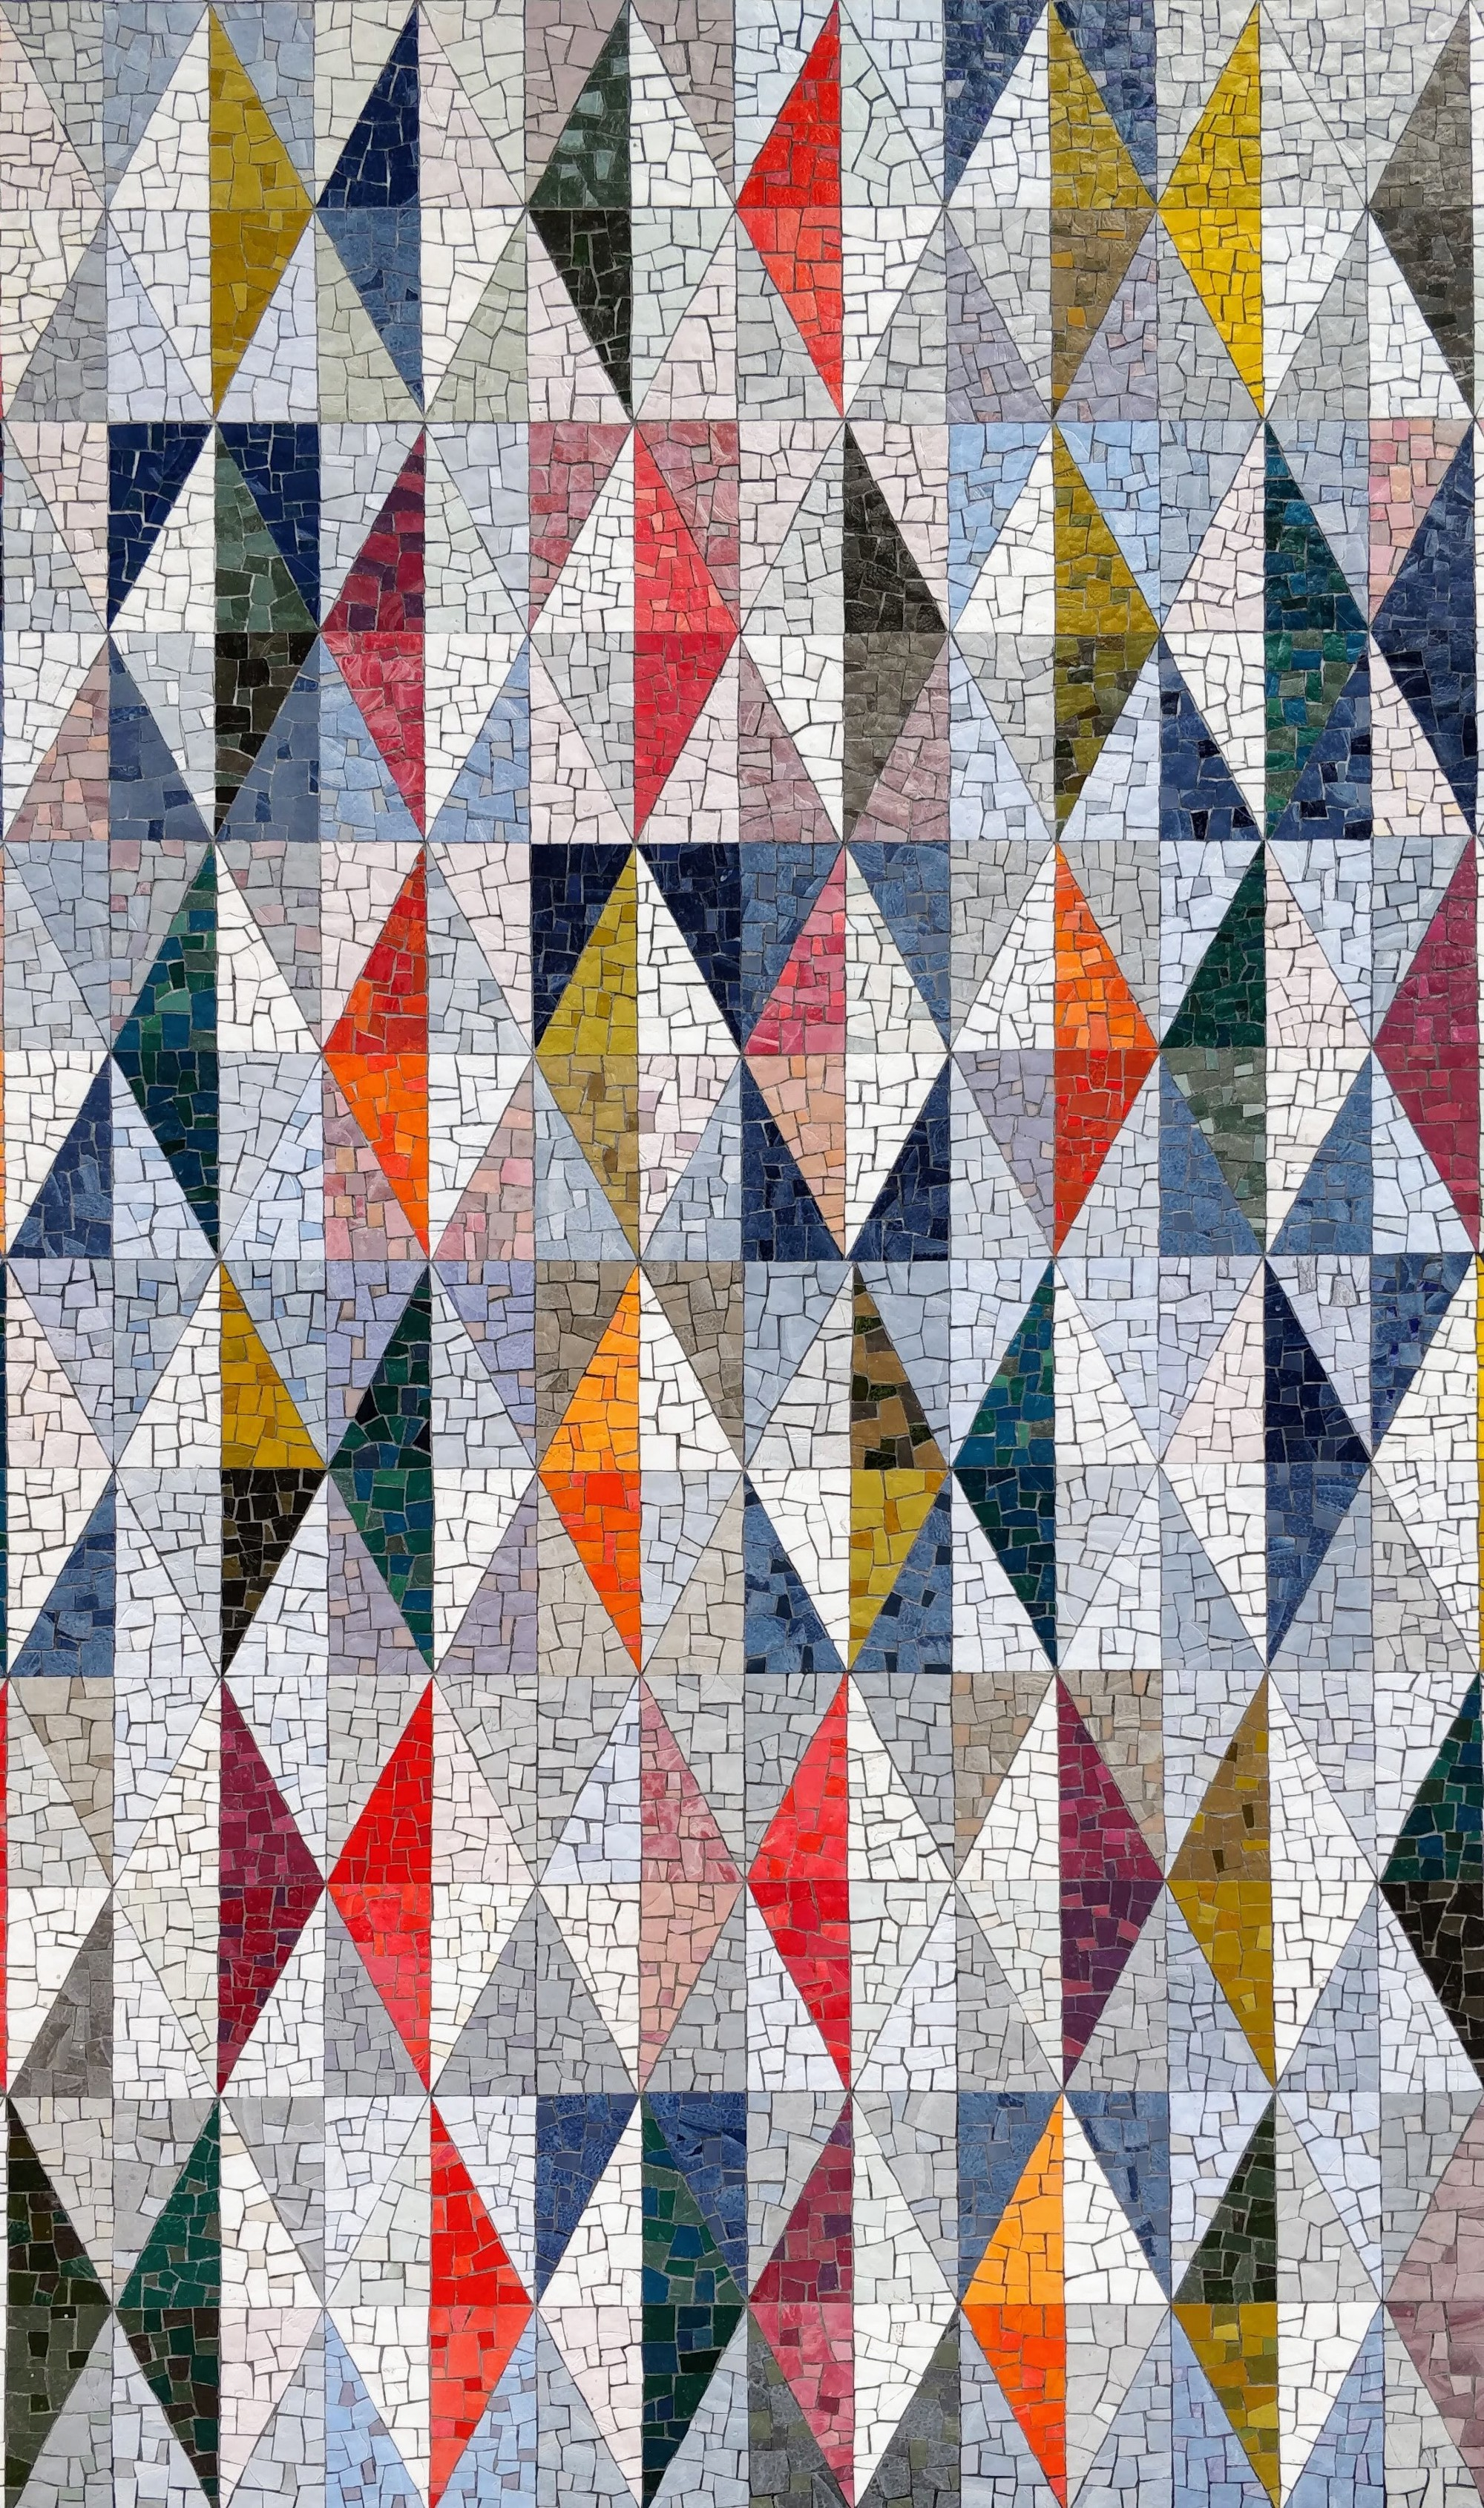 Picture of mosaic tiles in diamond patterns by Max Williams for Unsplash